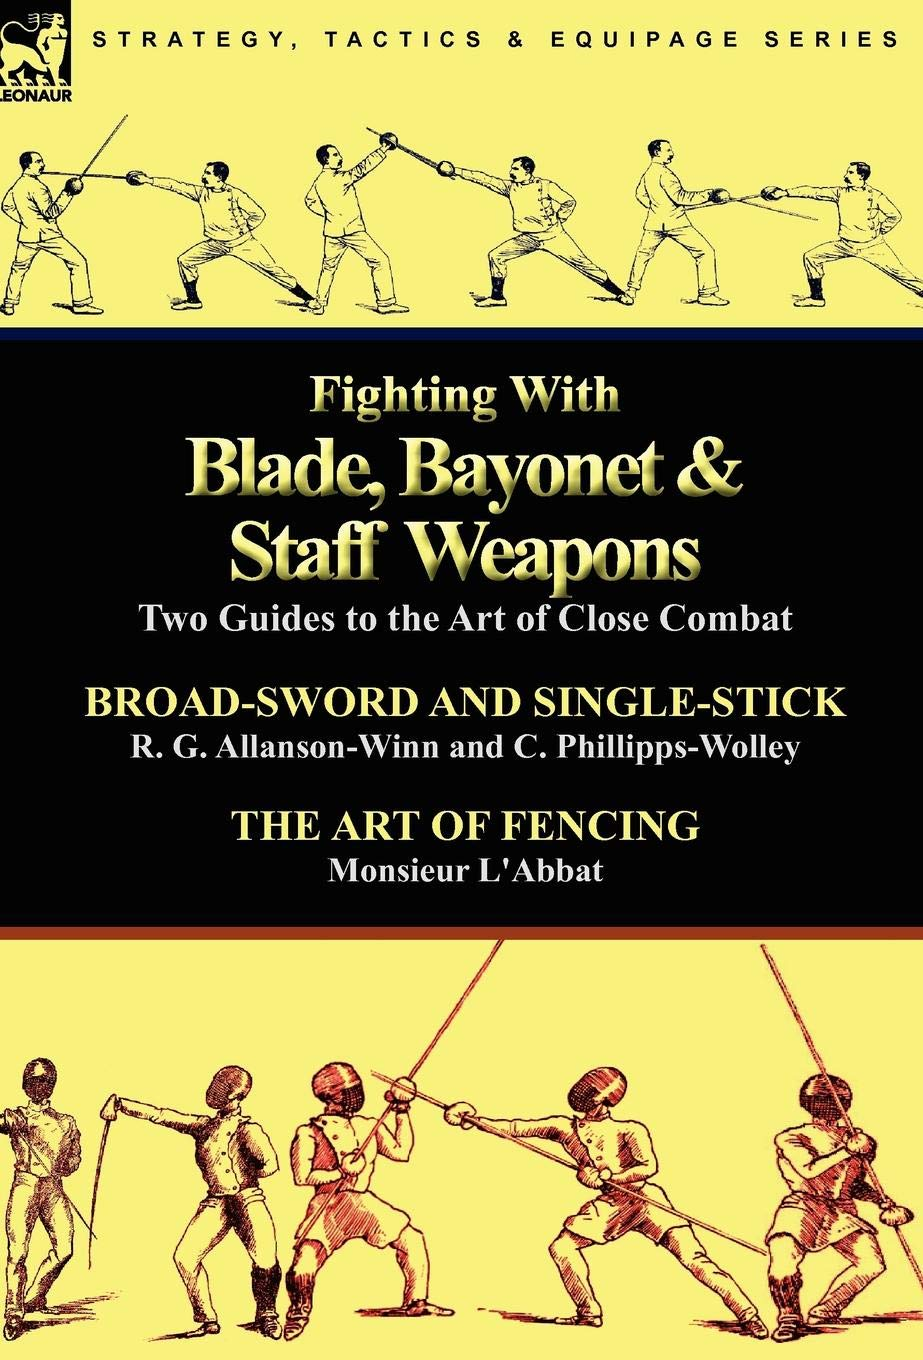 Fighting With Blade, Bayonet & Staff Weapons: Two Guides to the Art of Close Combat pdf